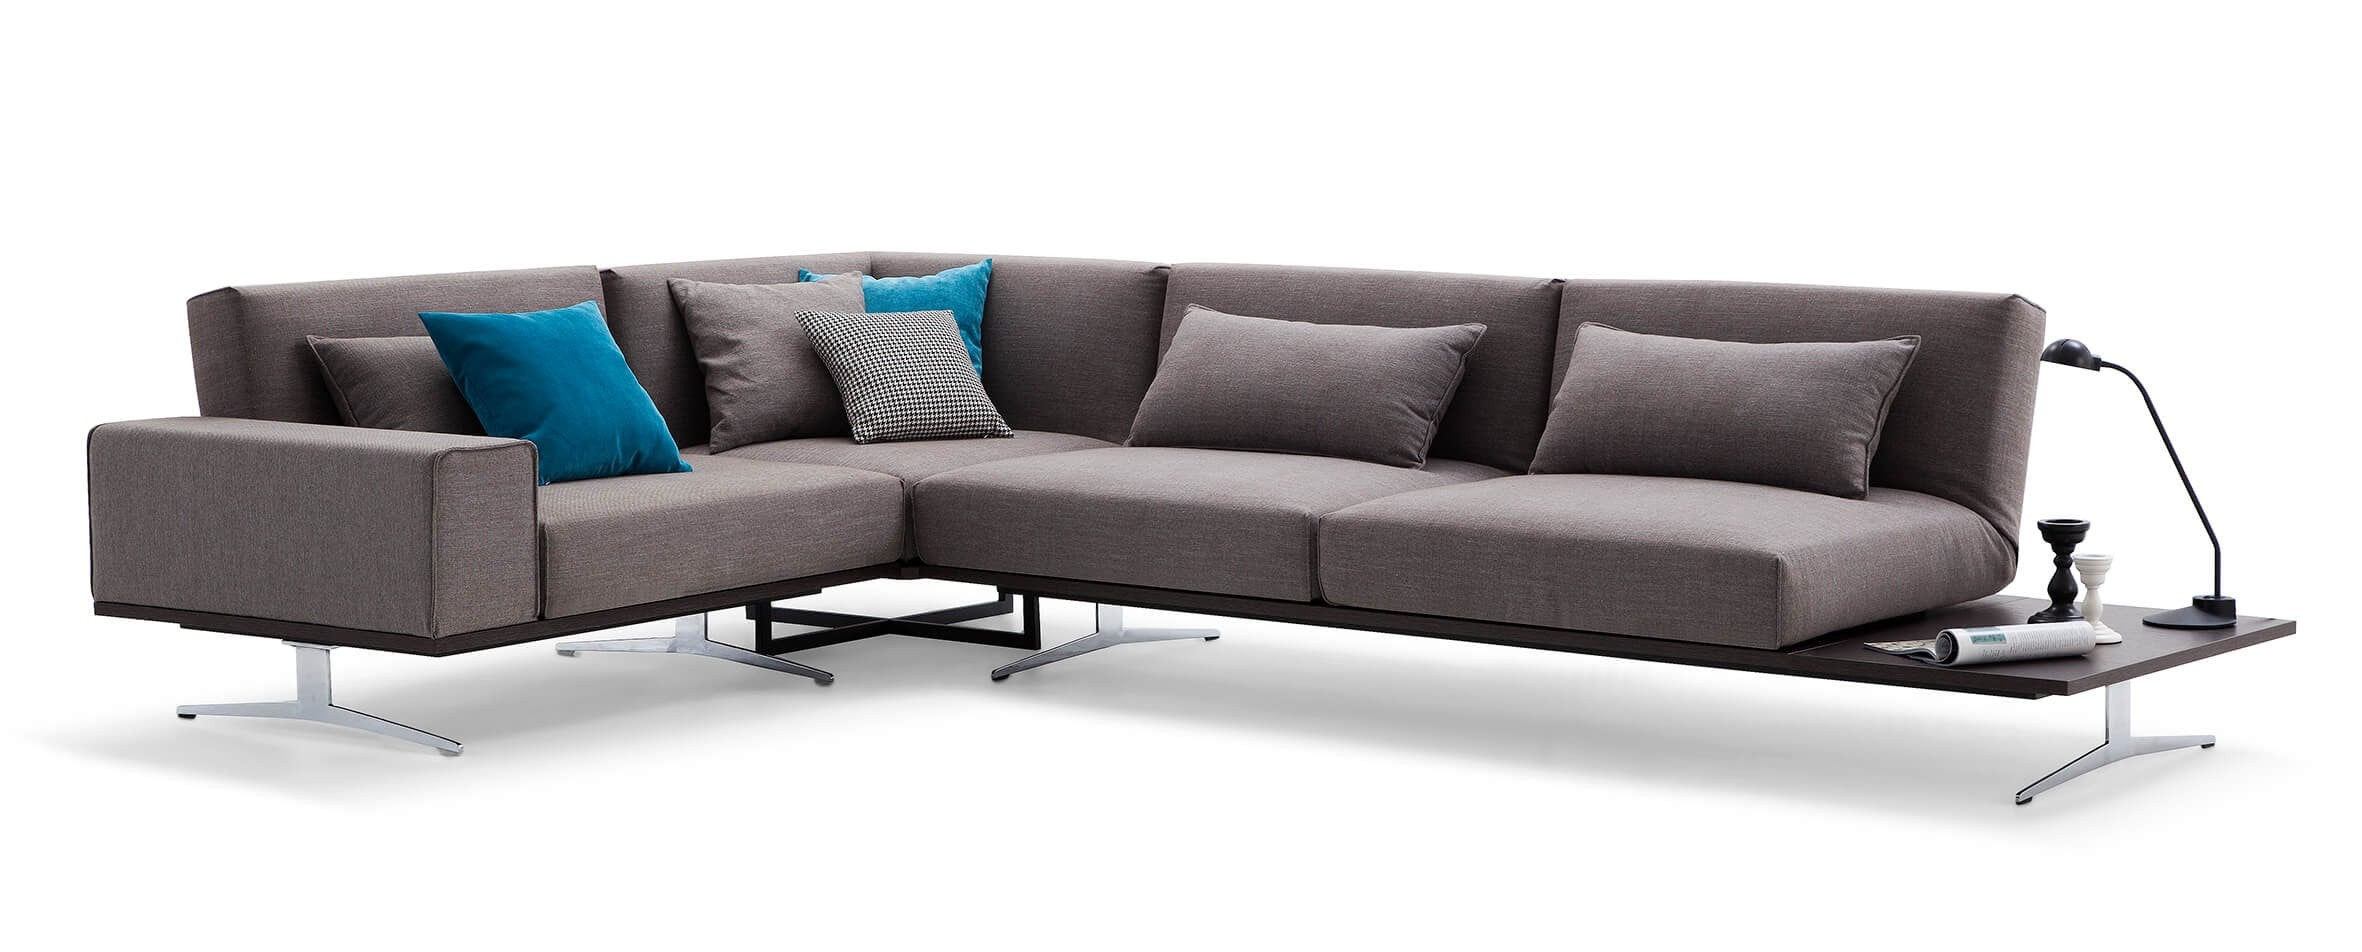 L Shape Modular Sofa Bed Sets More Than Just A Sofa